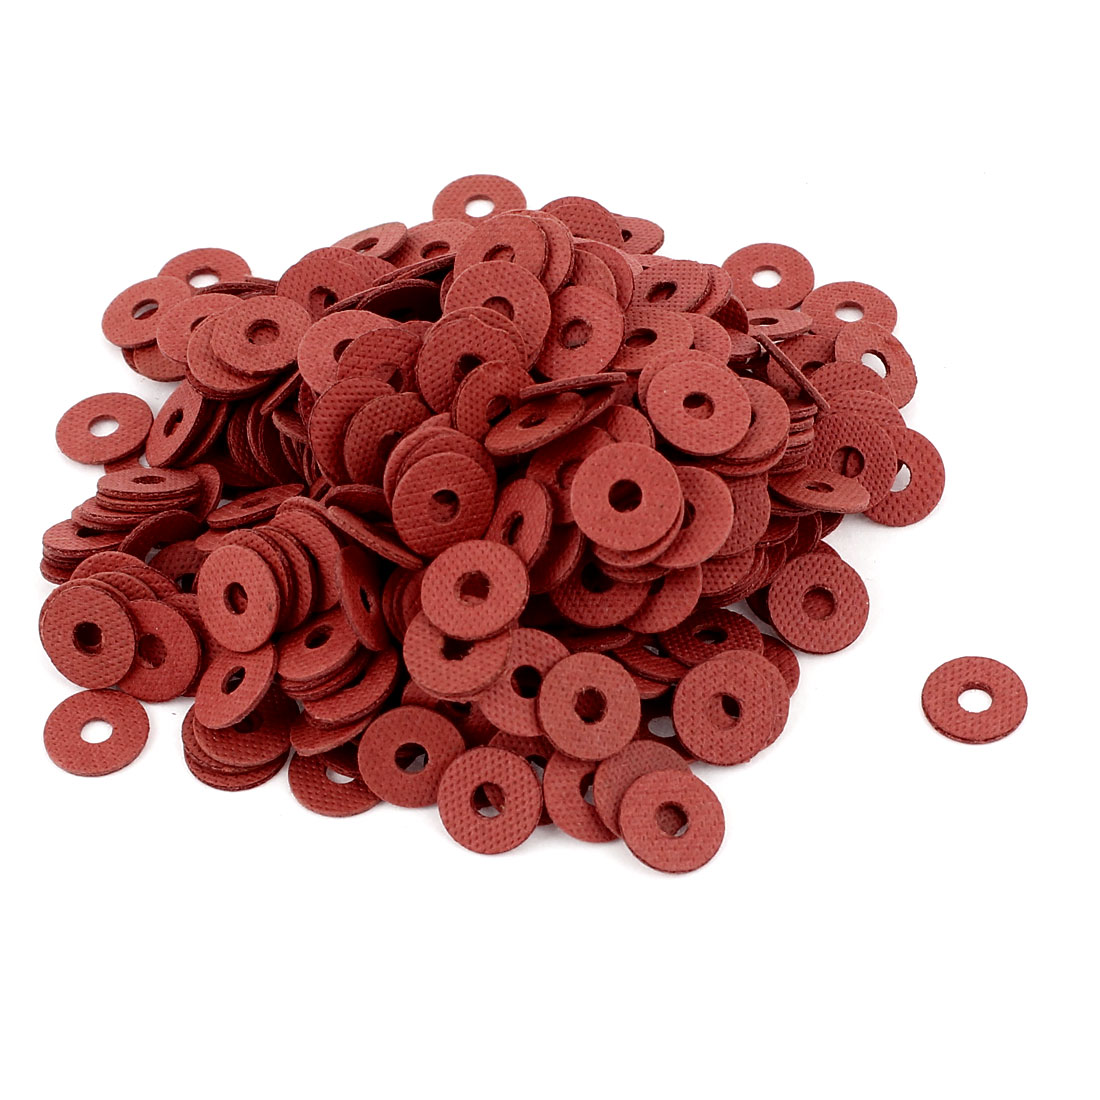 Fiber Flat Insulating Washer Ring 3mmx10mmx1mm 500Pcs Red for Screws